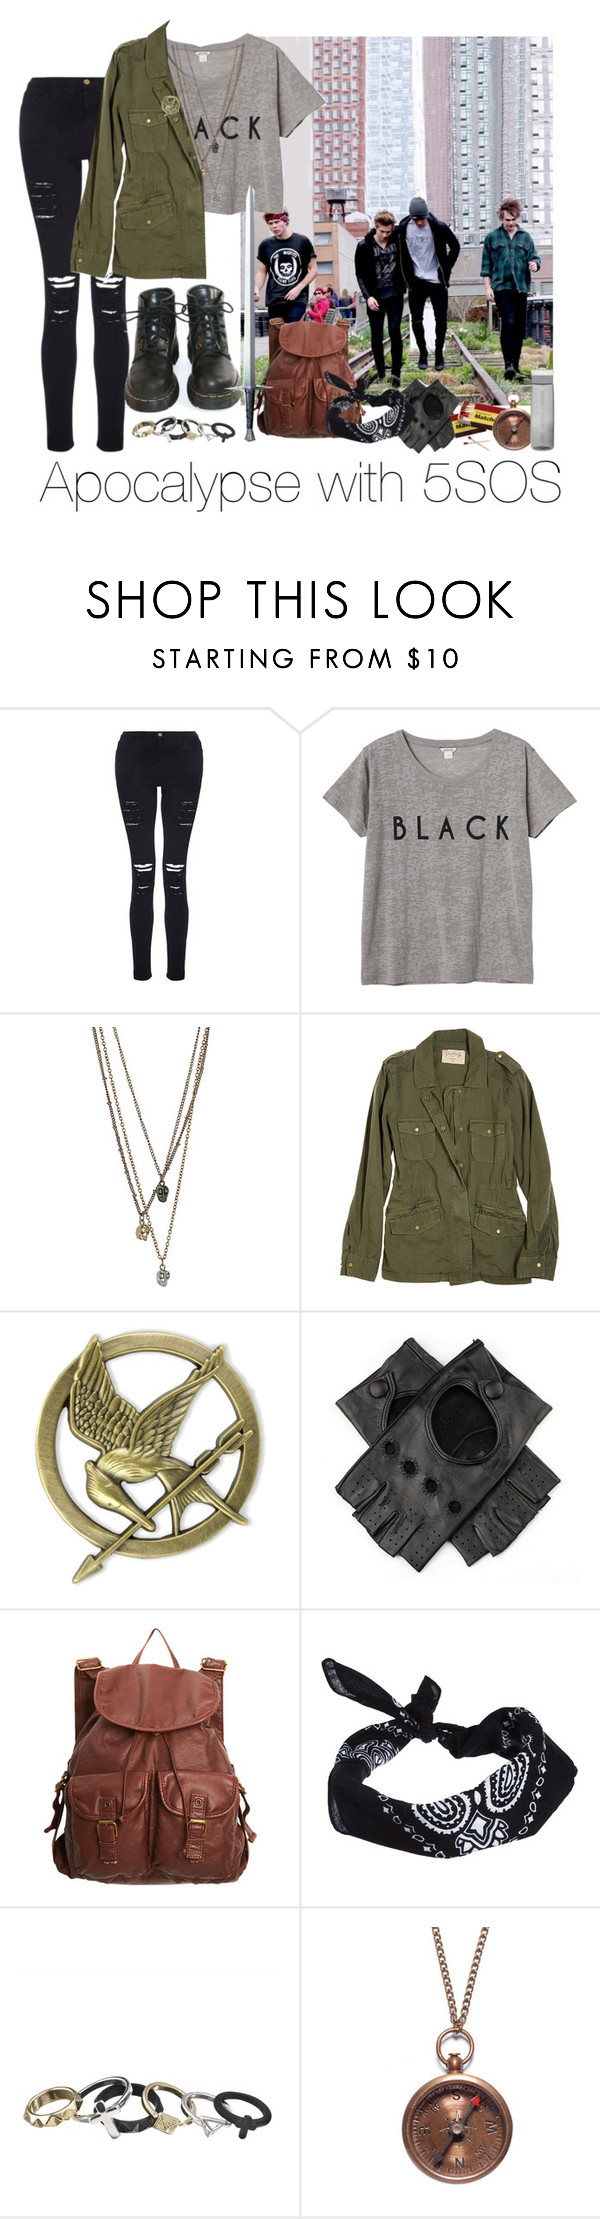 """""""Apocalypse with 5SOS"""" by marissa-louise ❤ liked on Polyvore featuring Frame Denim, Monki, Velvet, Dr. Martens, dELiA*s, ASOS, S.W.O.R.D., We Are All Smith and Contigo"""